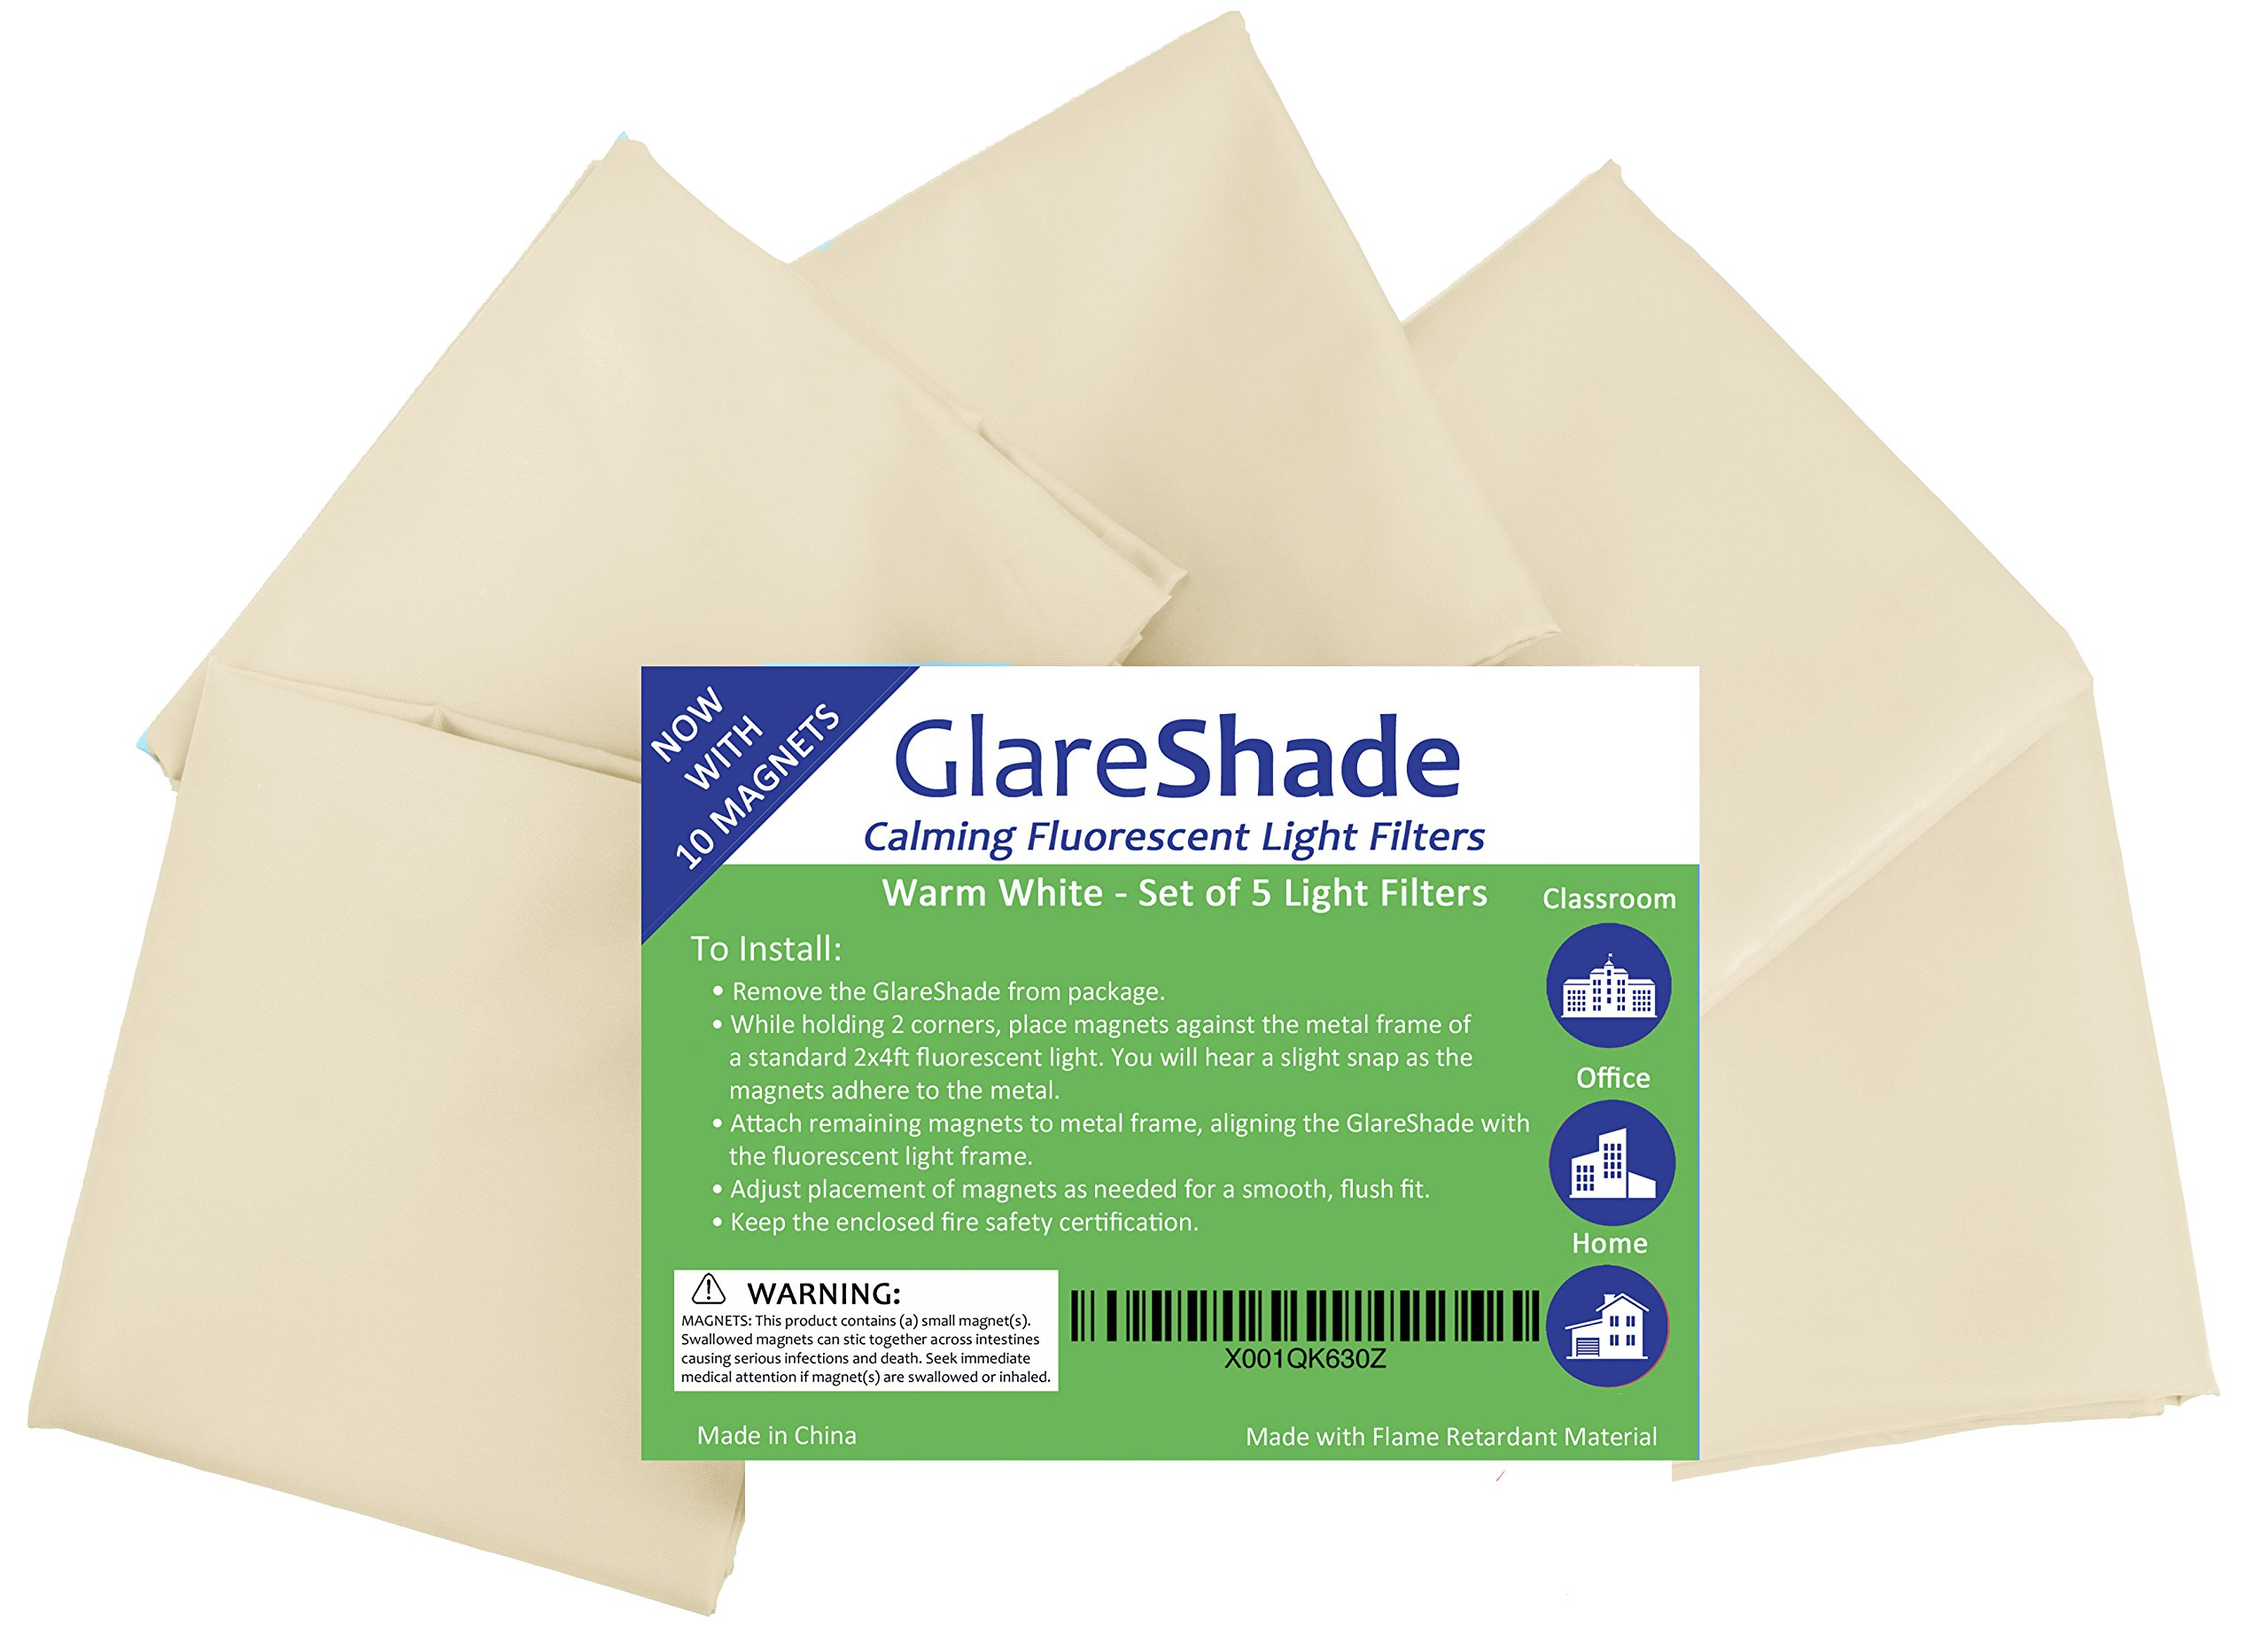 GlareShade Fluorescent Light Filter Diffuser Covers with 10 Magnets for a Flush Fit (5 pack; warm white). Eliminate Harsh Glare at Work and School while Improving Focus and Classroom Management.